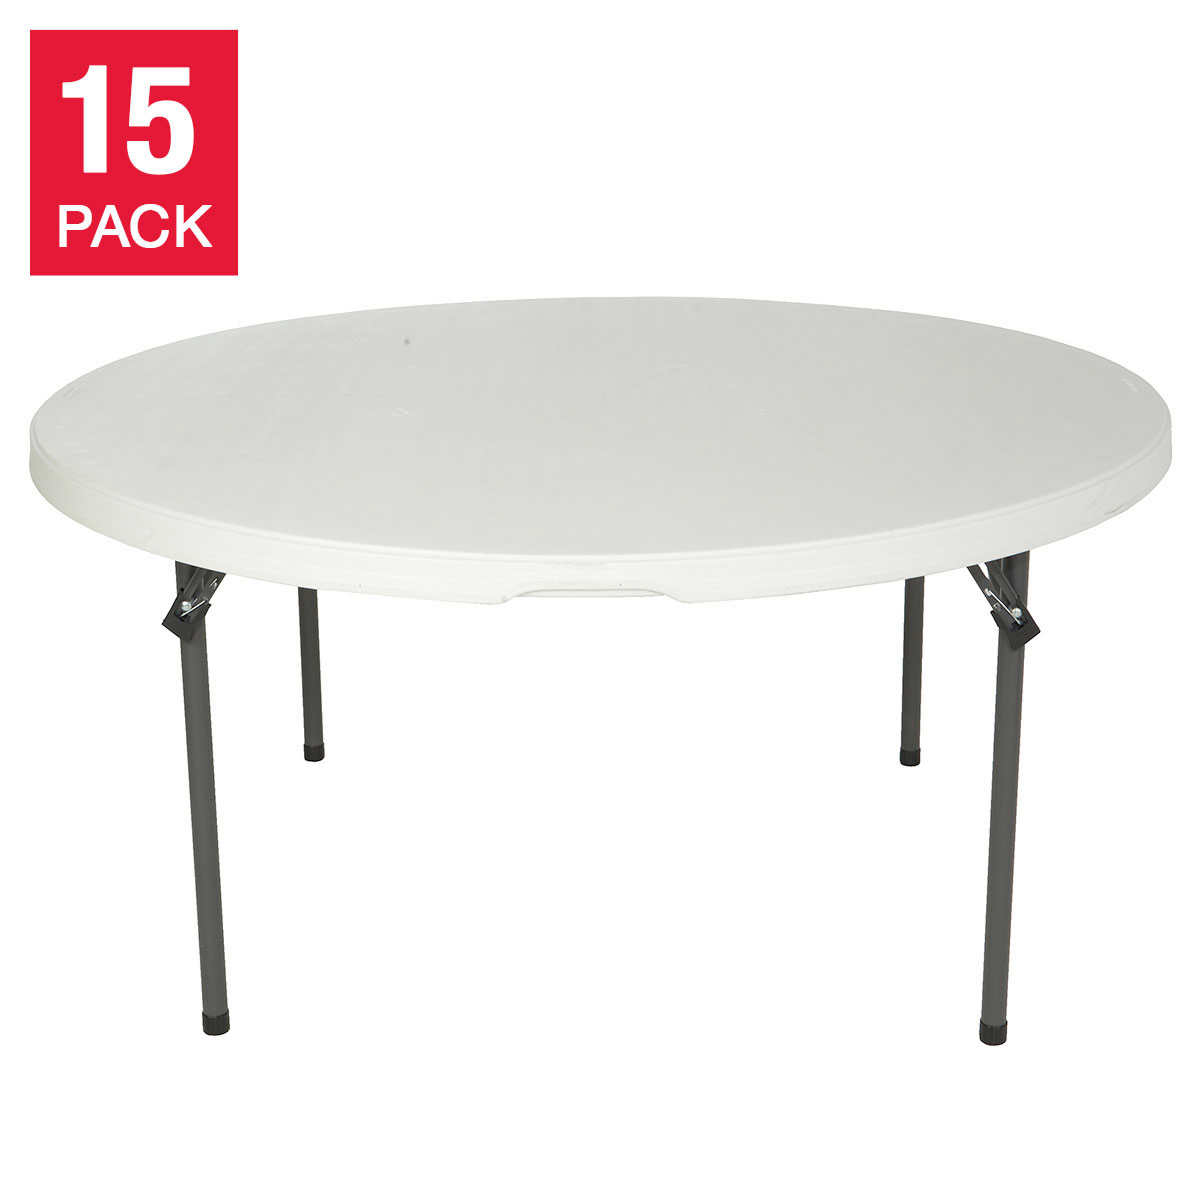 "Lifetime 60"" Round Folding Table 15 pk with Cart White Granite"